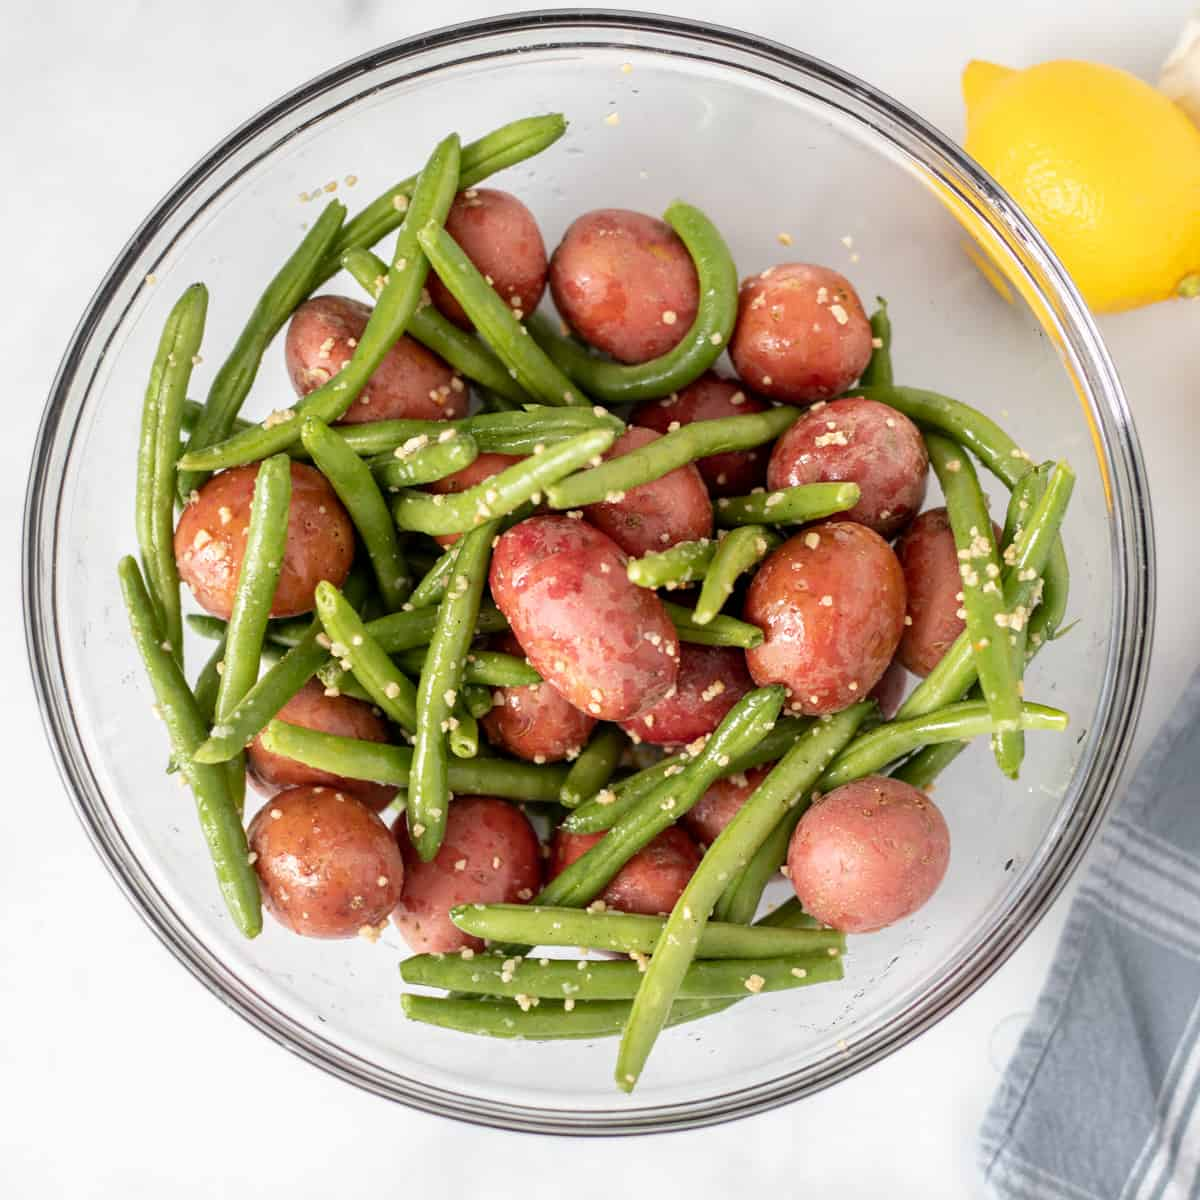 Red potatoes and green beans in clear mixing bowl with garlic and salt and pepper.